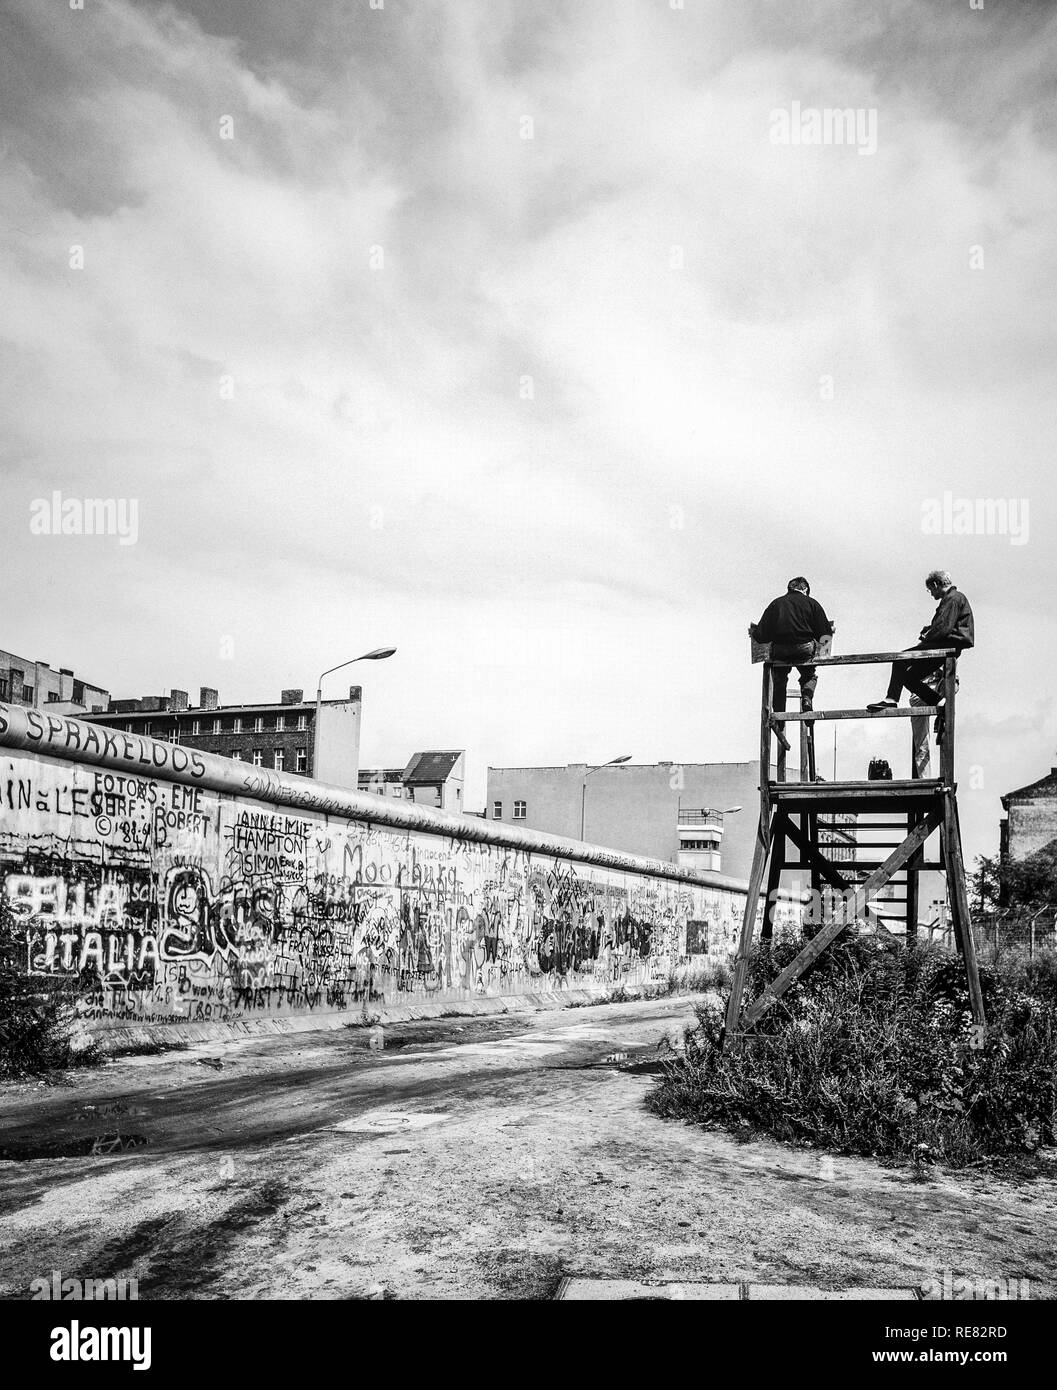 August 1986, Berlin Wall graffitis, people on observation platform looking over the Wall, Zimmerstrasse street, West Berlin side, Germany, Europe, Stock Photo